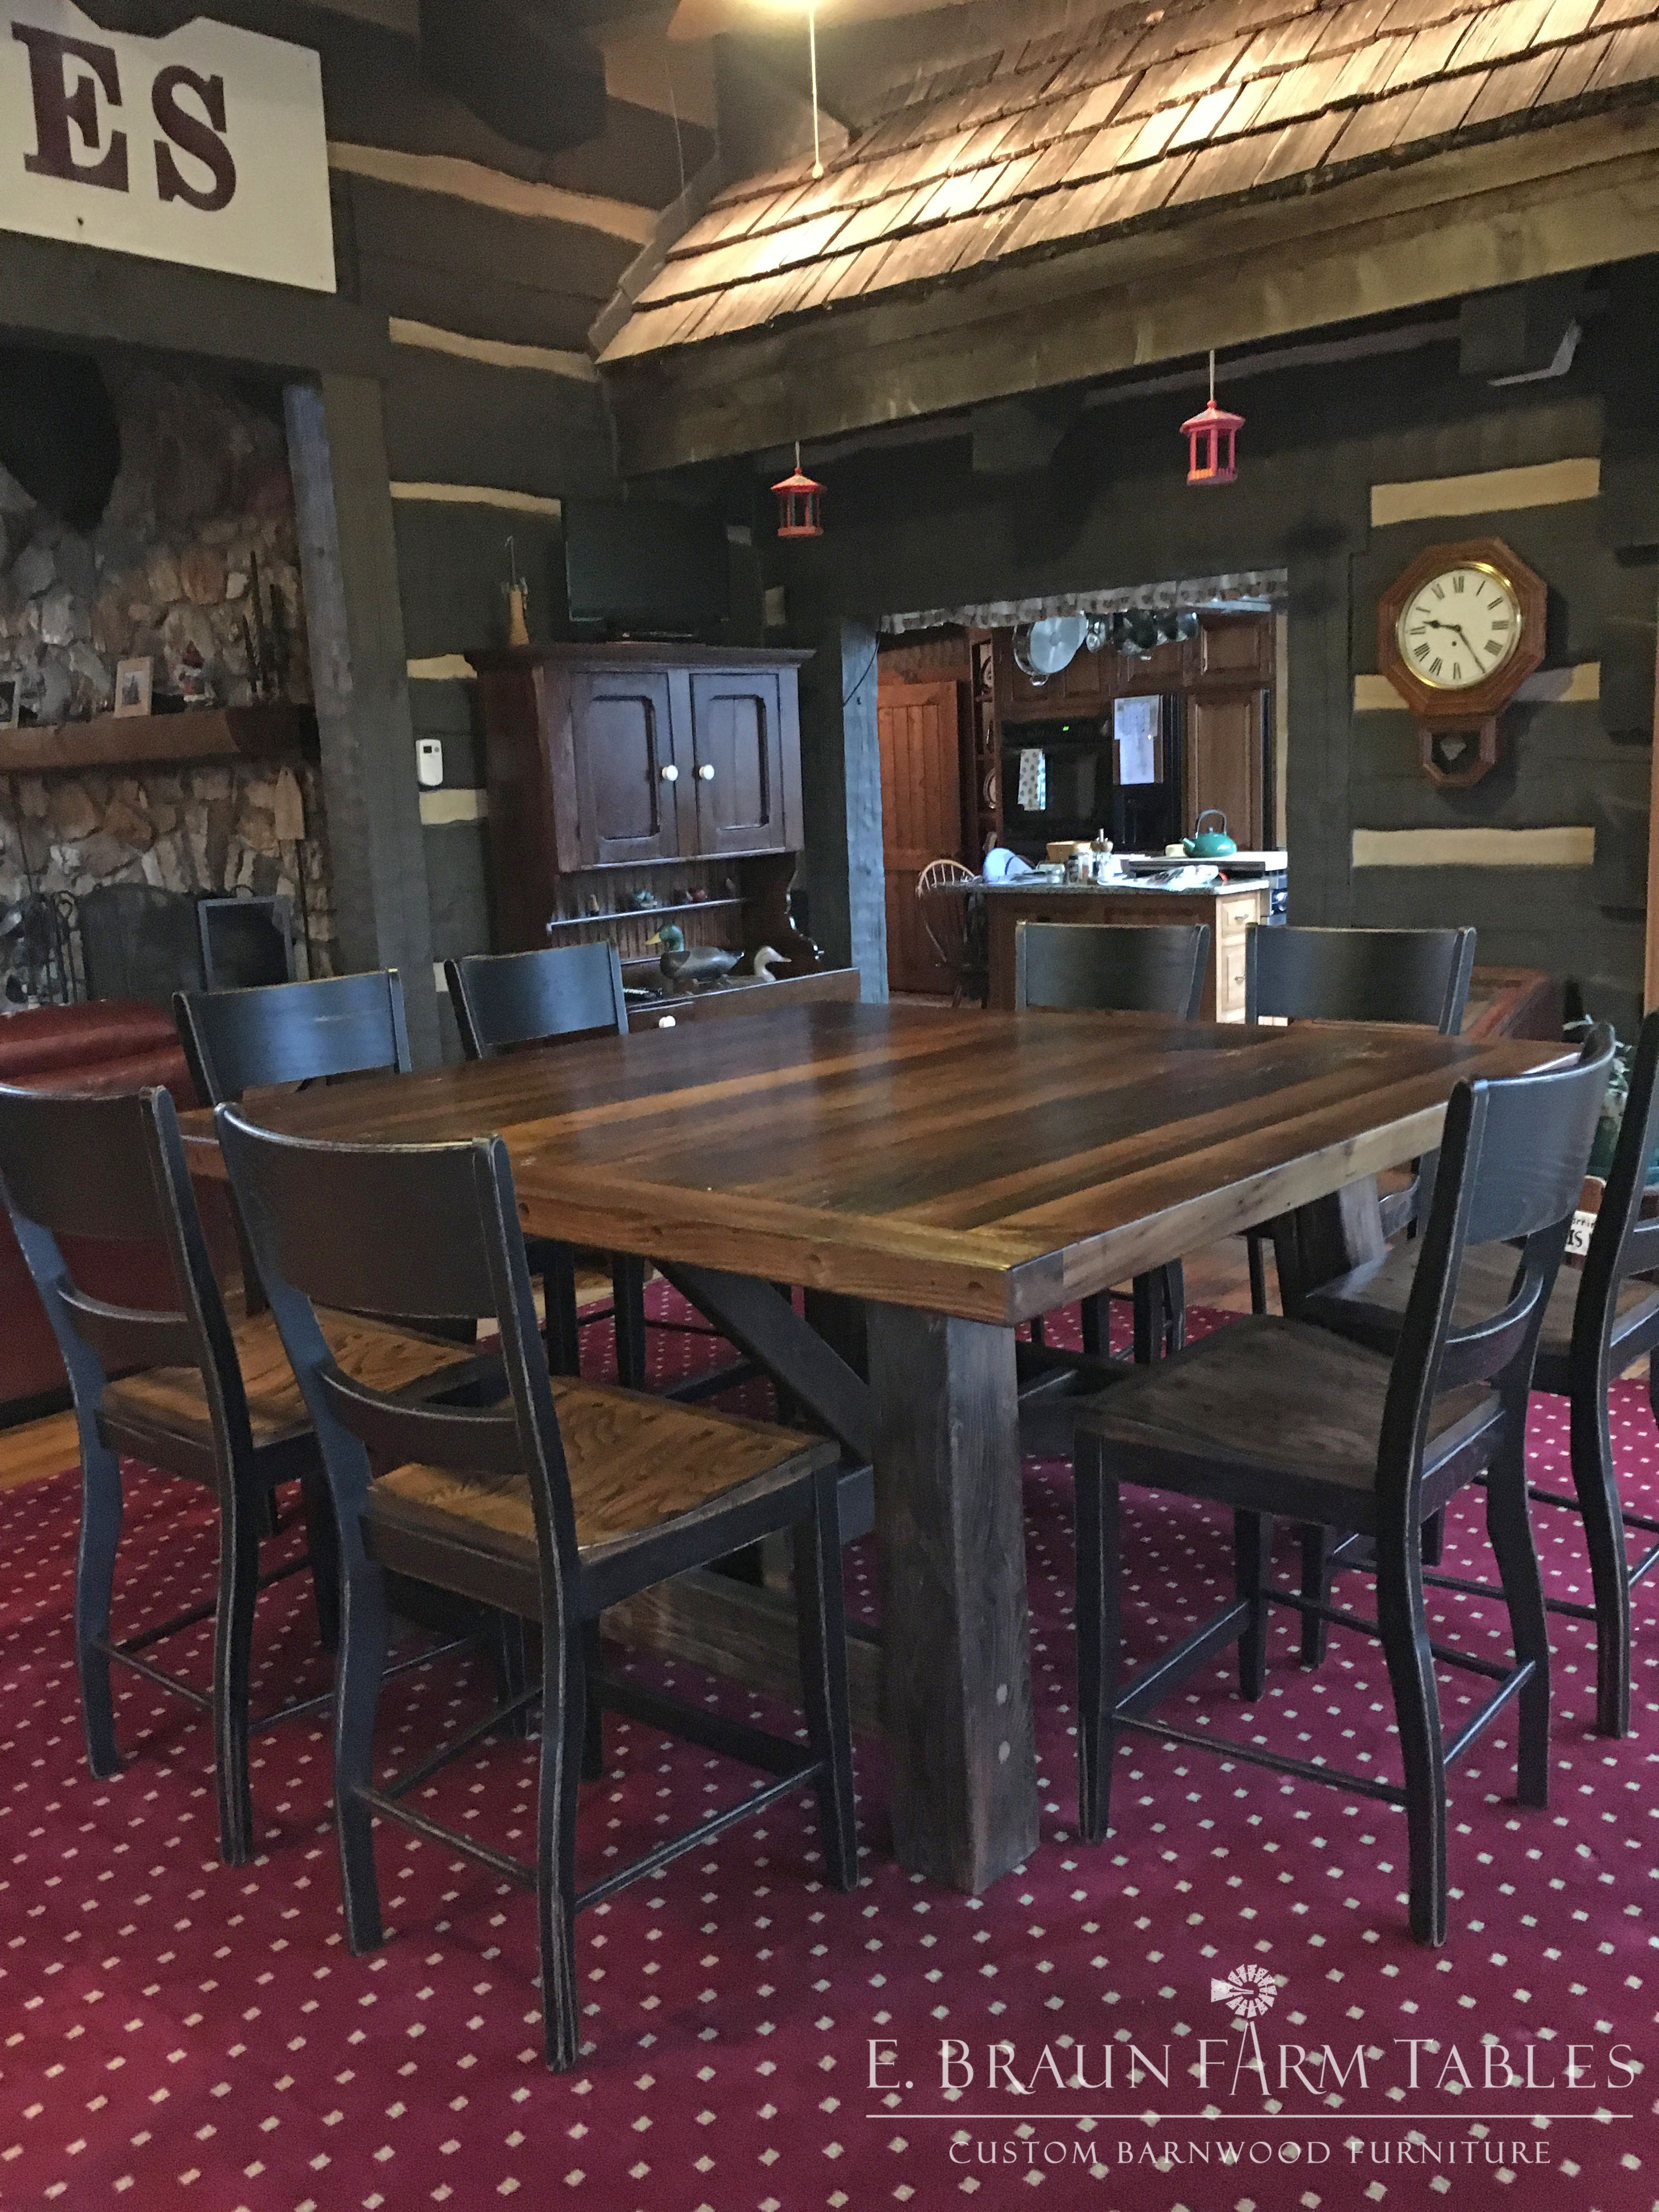 How About Adding A Rustic Table To Play Card Games And Have Drink Here Is Square Sawbuck Trestle With Thick Top Handcrafted From Reclaimed